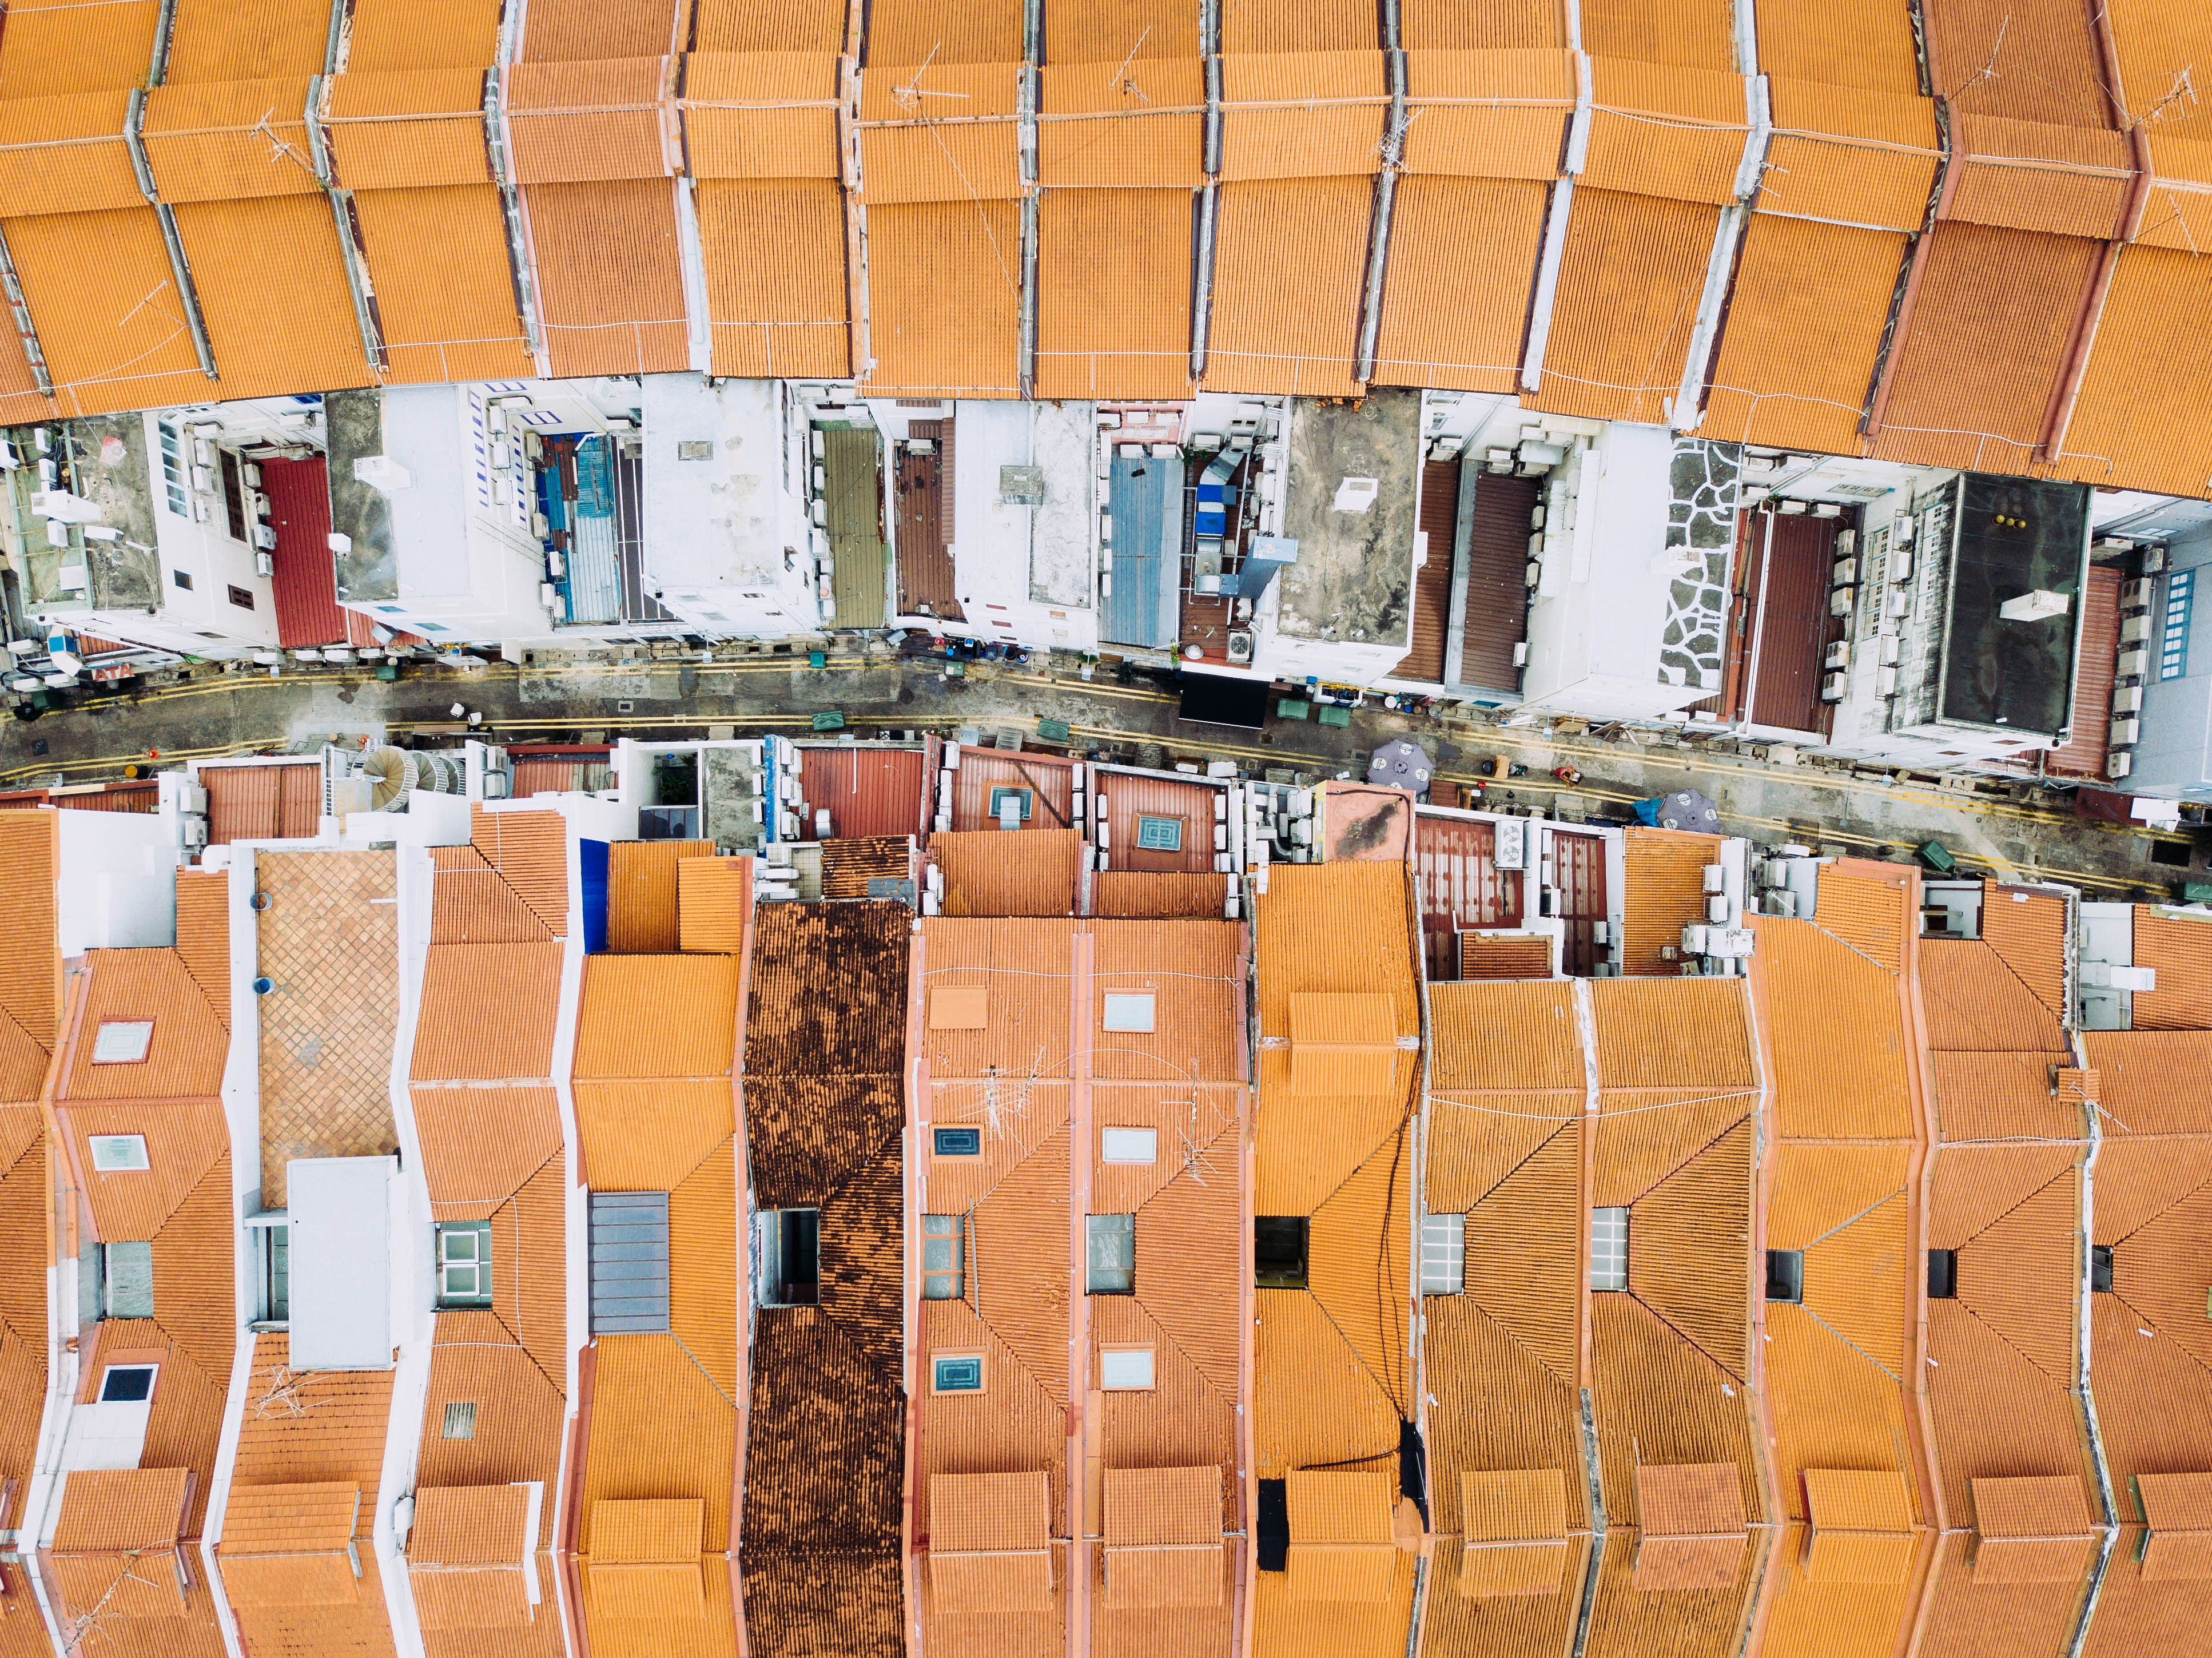 aerial view photography of houses during daytime